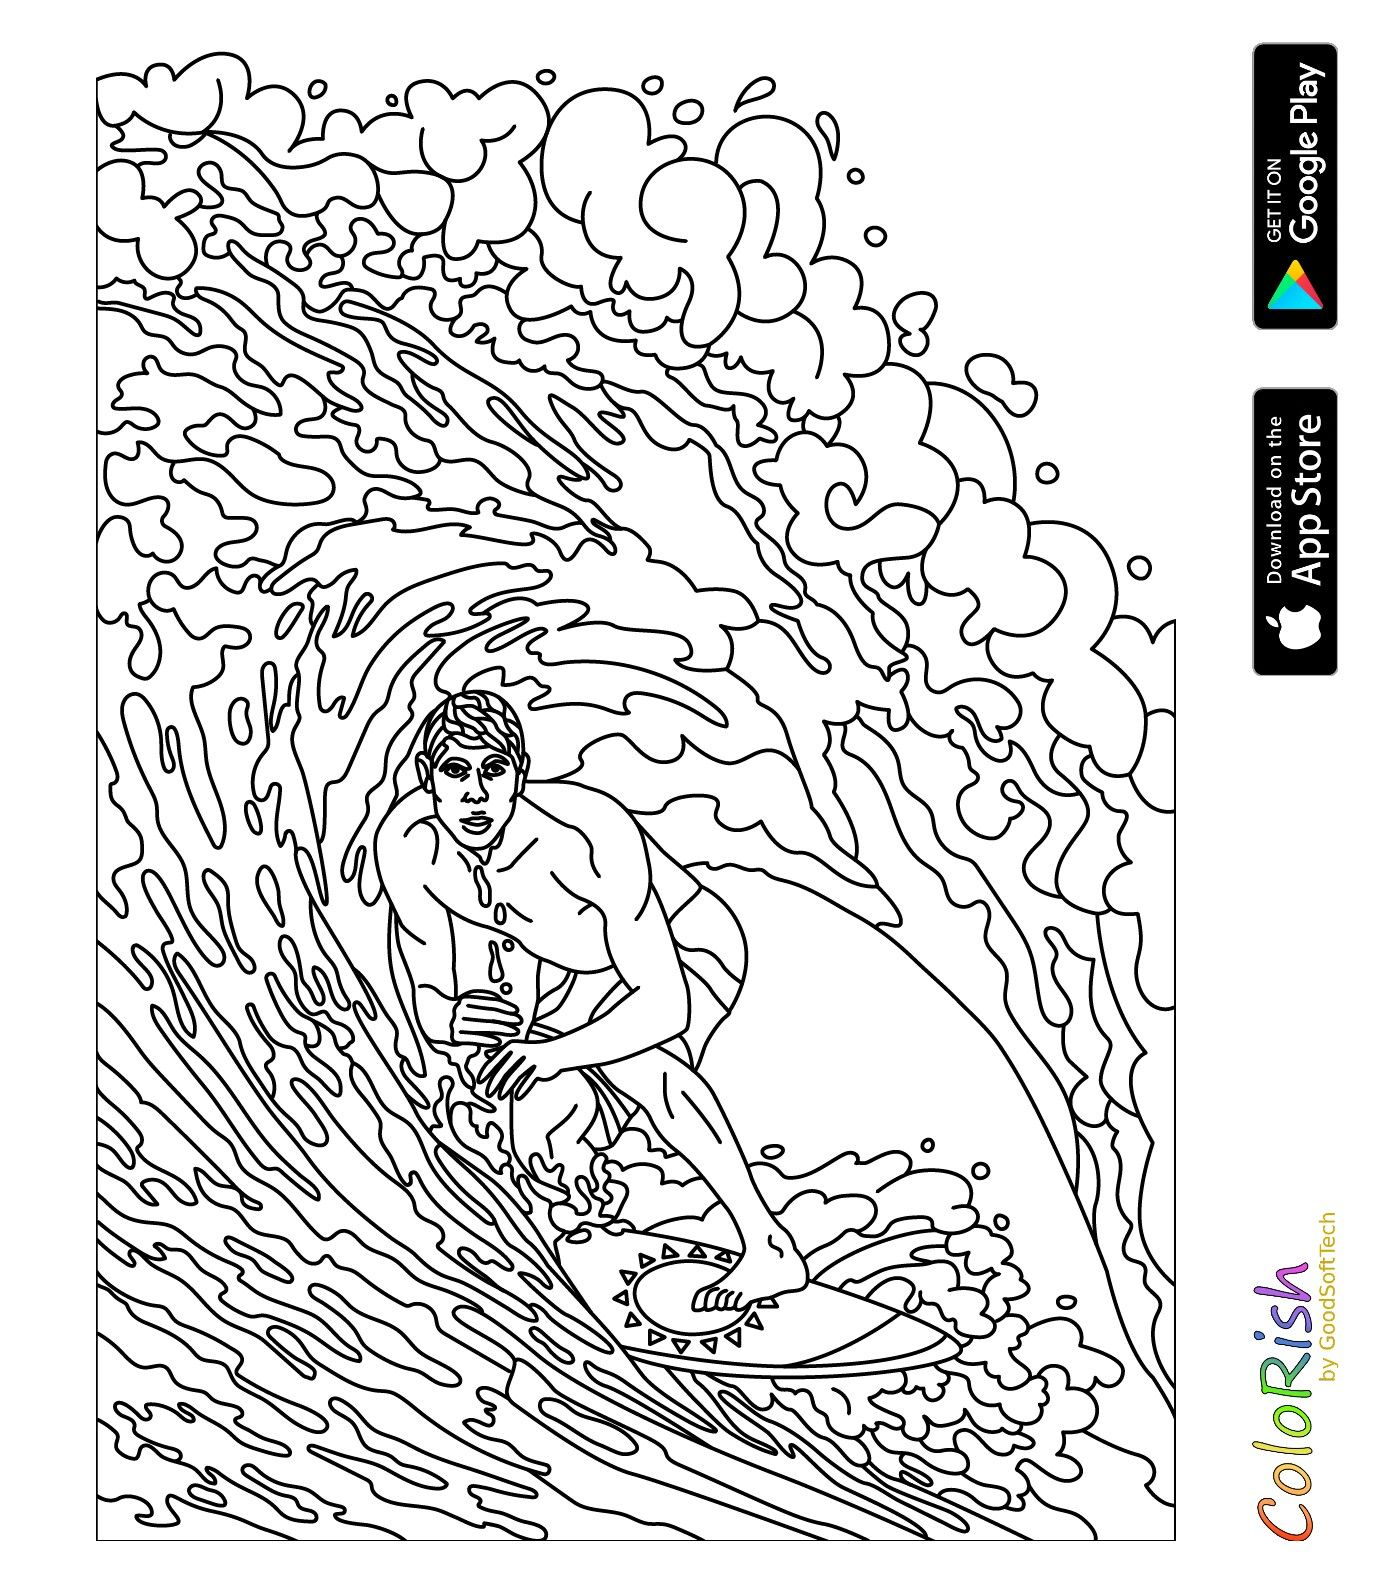 Pin By Barbara On Coloring Sport Dance Yoga Colouring Pages Coloring Pages Abstract Artwork